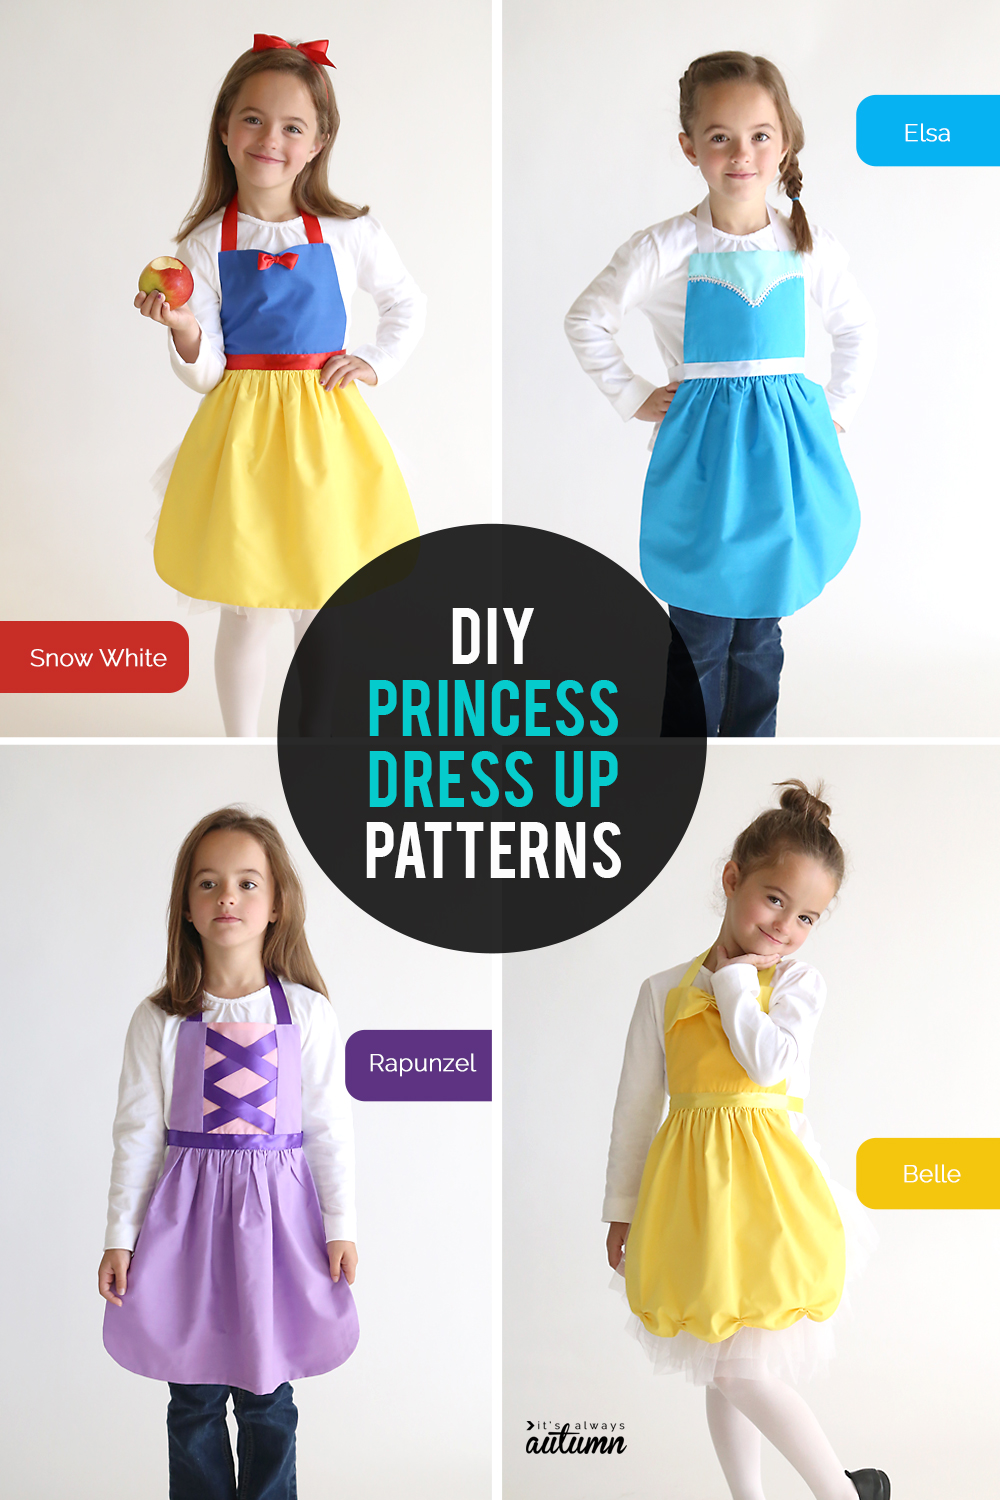 These princess dress ups are so easy to make! Click through for the free pattern in three different sizes plus a video tutorial sewing you how to sew them up.